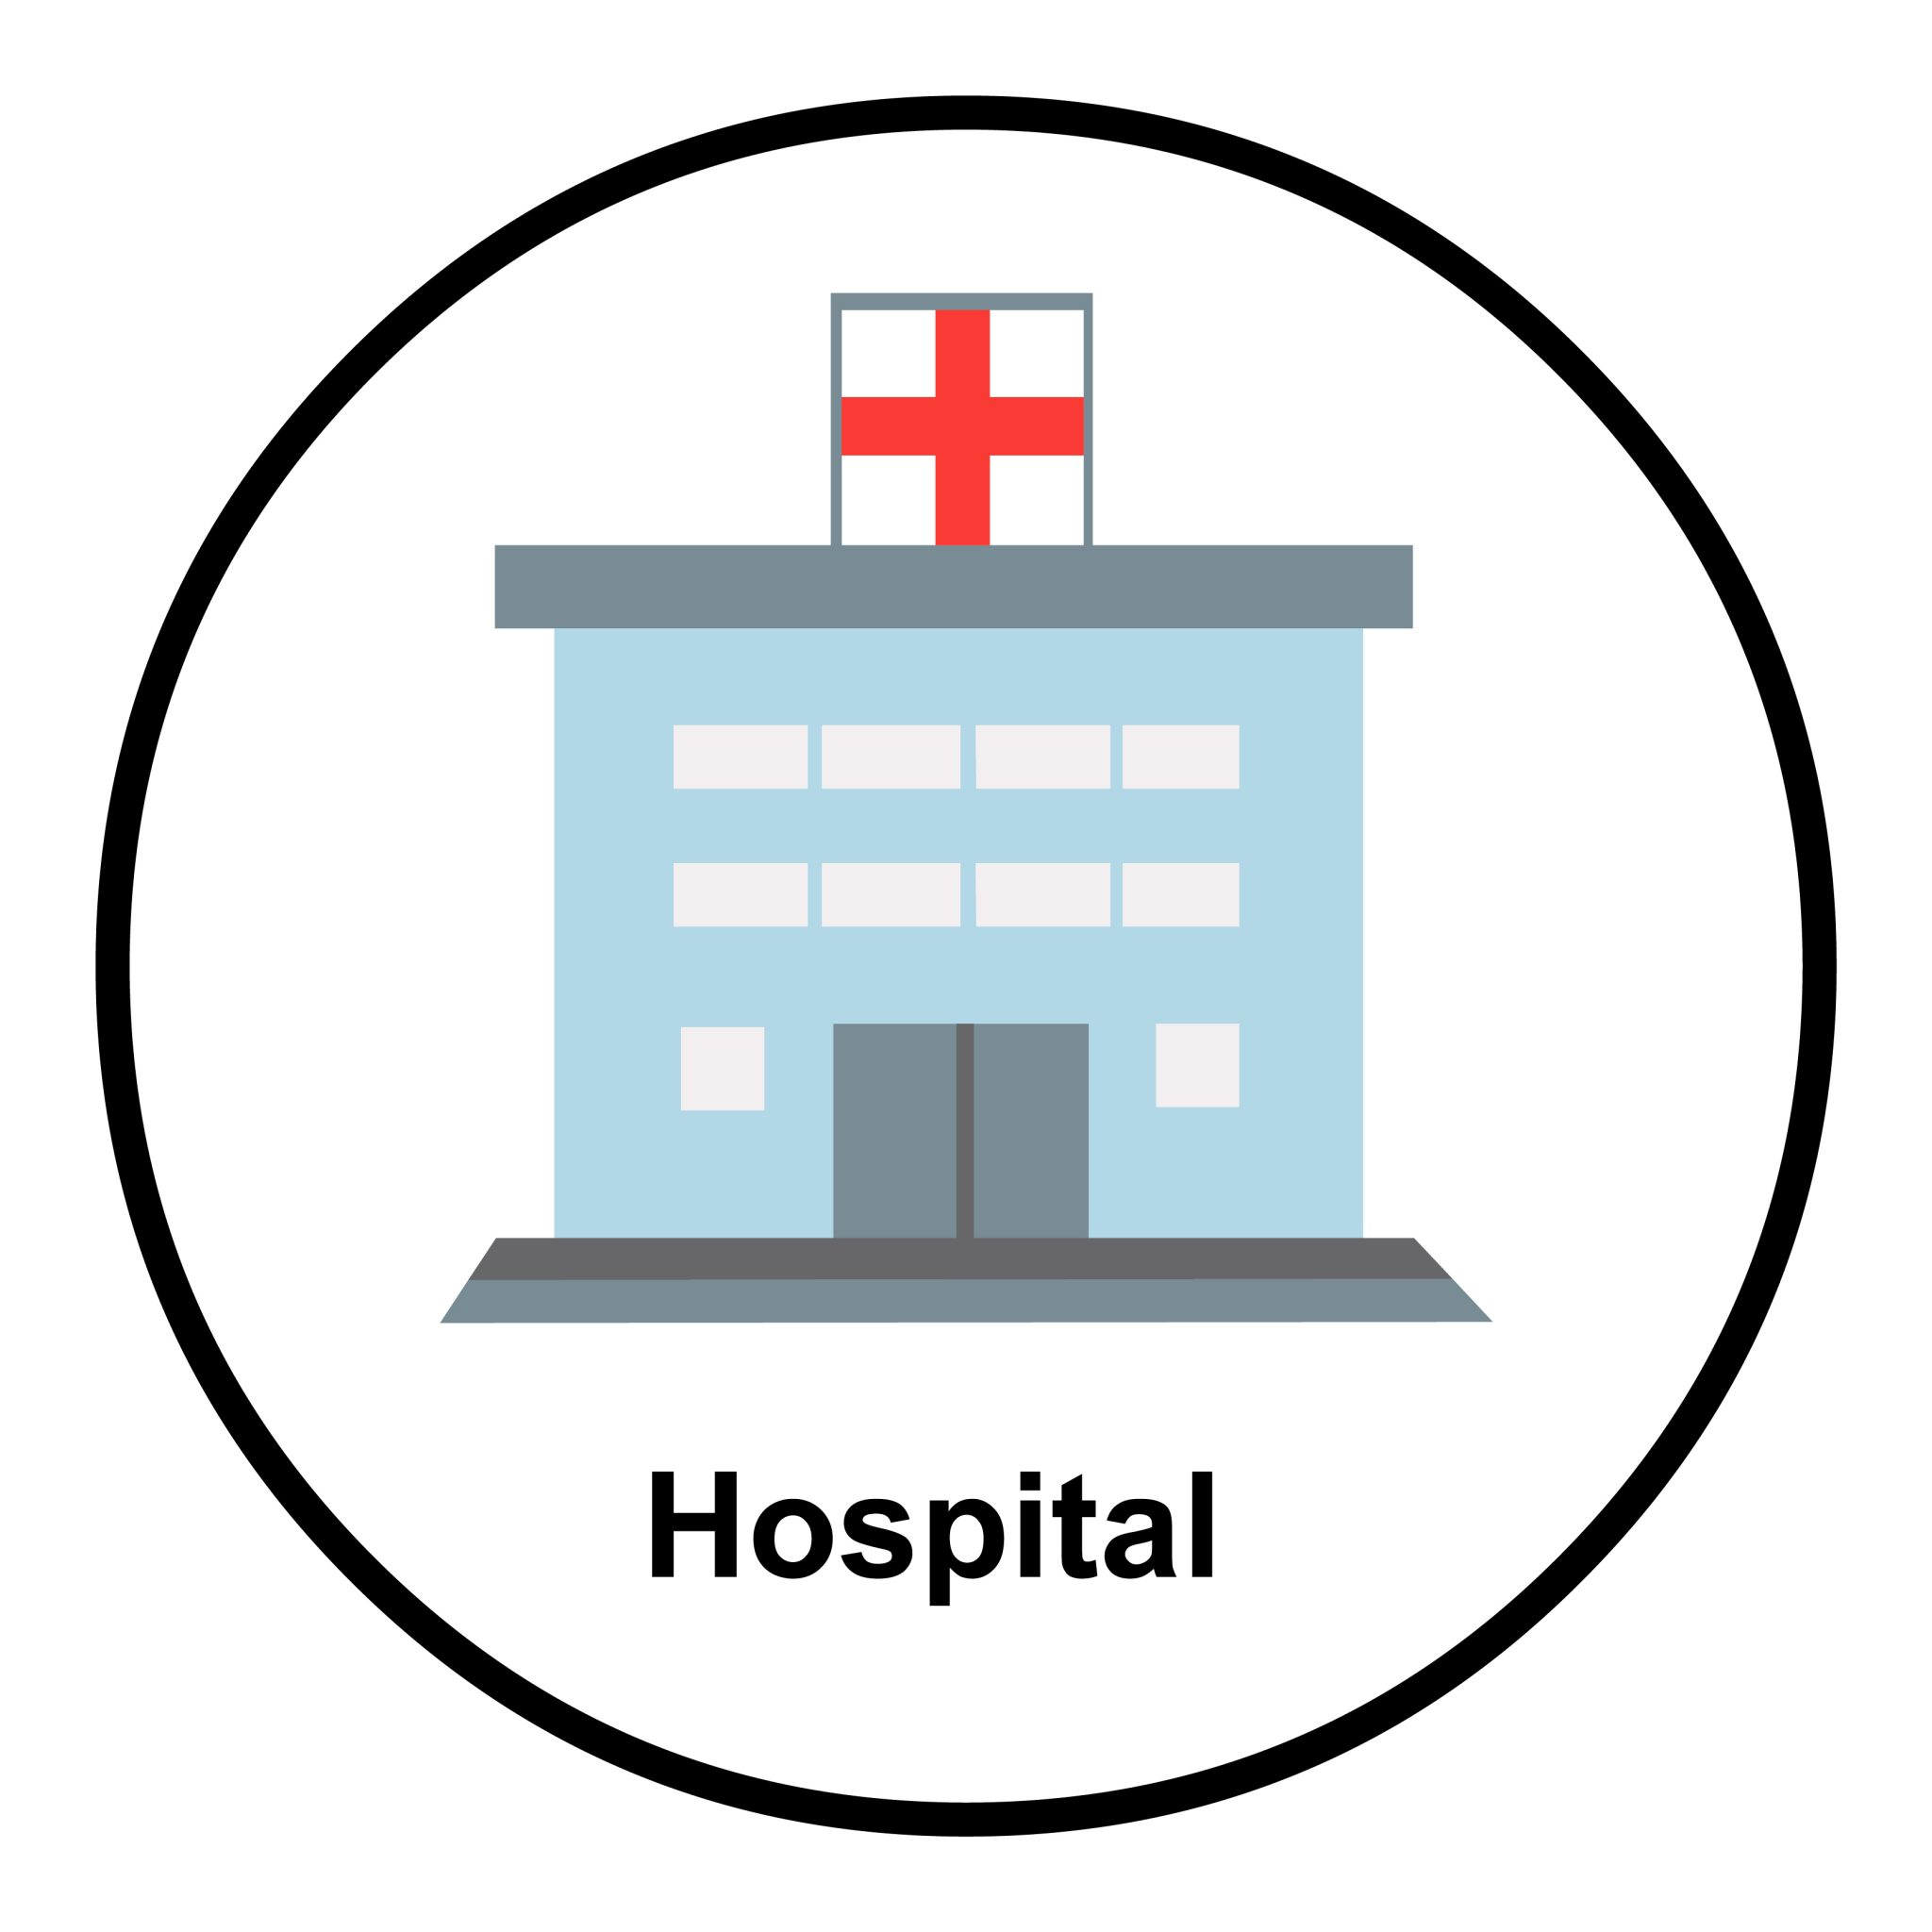 hospital and emergencies